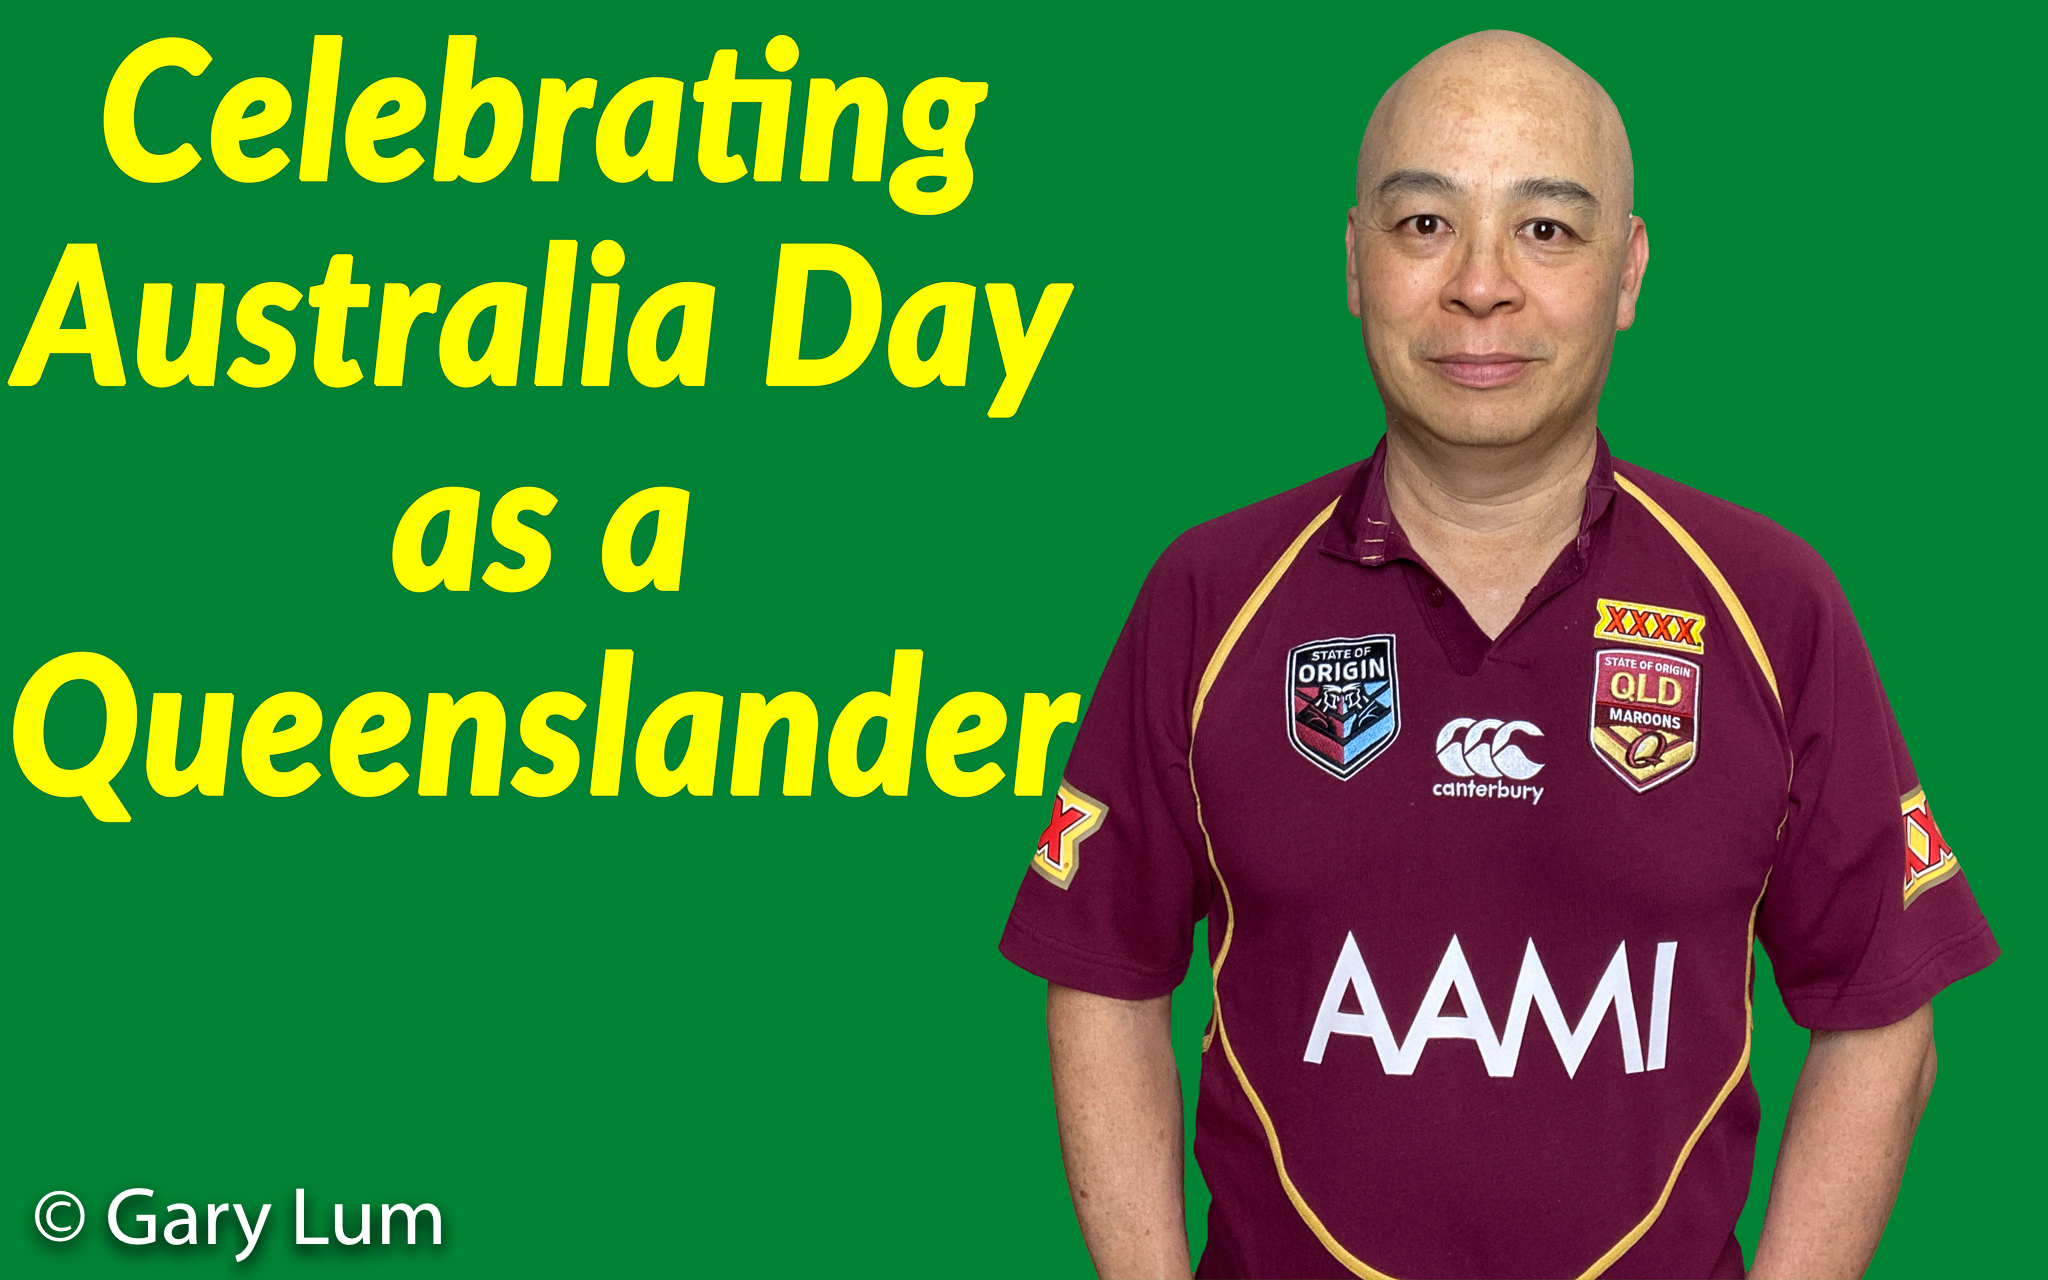 Me on Australia Day 2020 celebrating being a Queenslander. The best of Australia. Gary Lum.